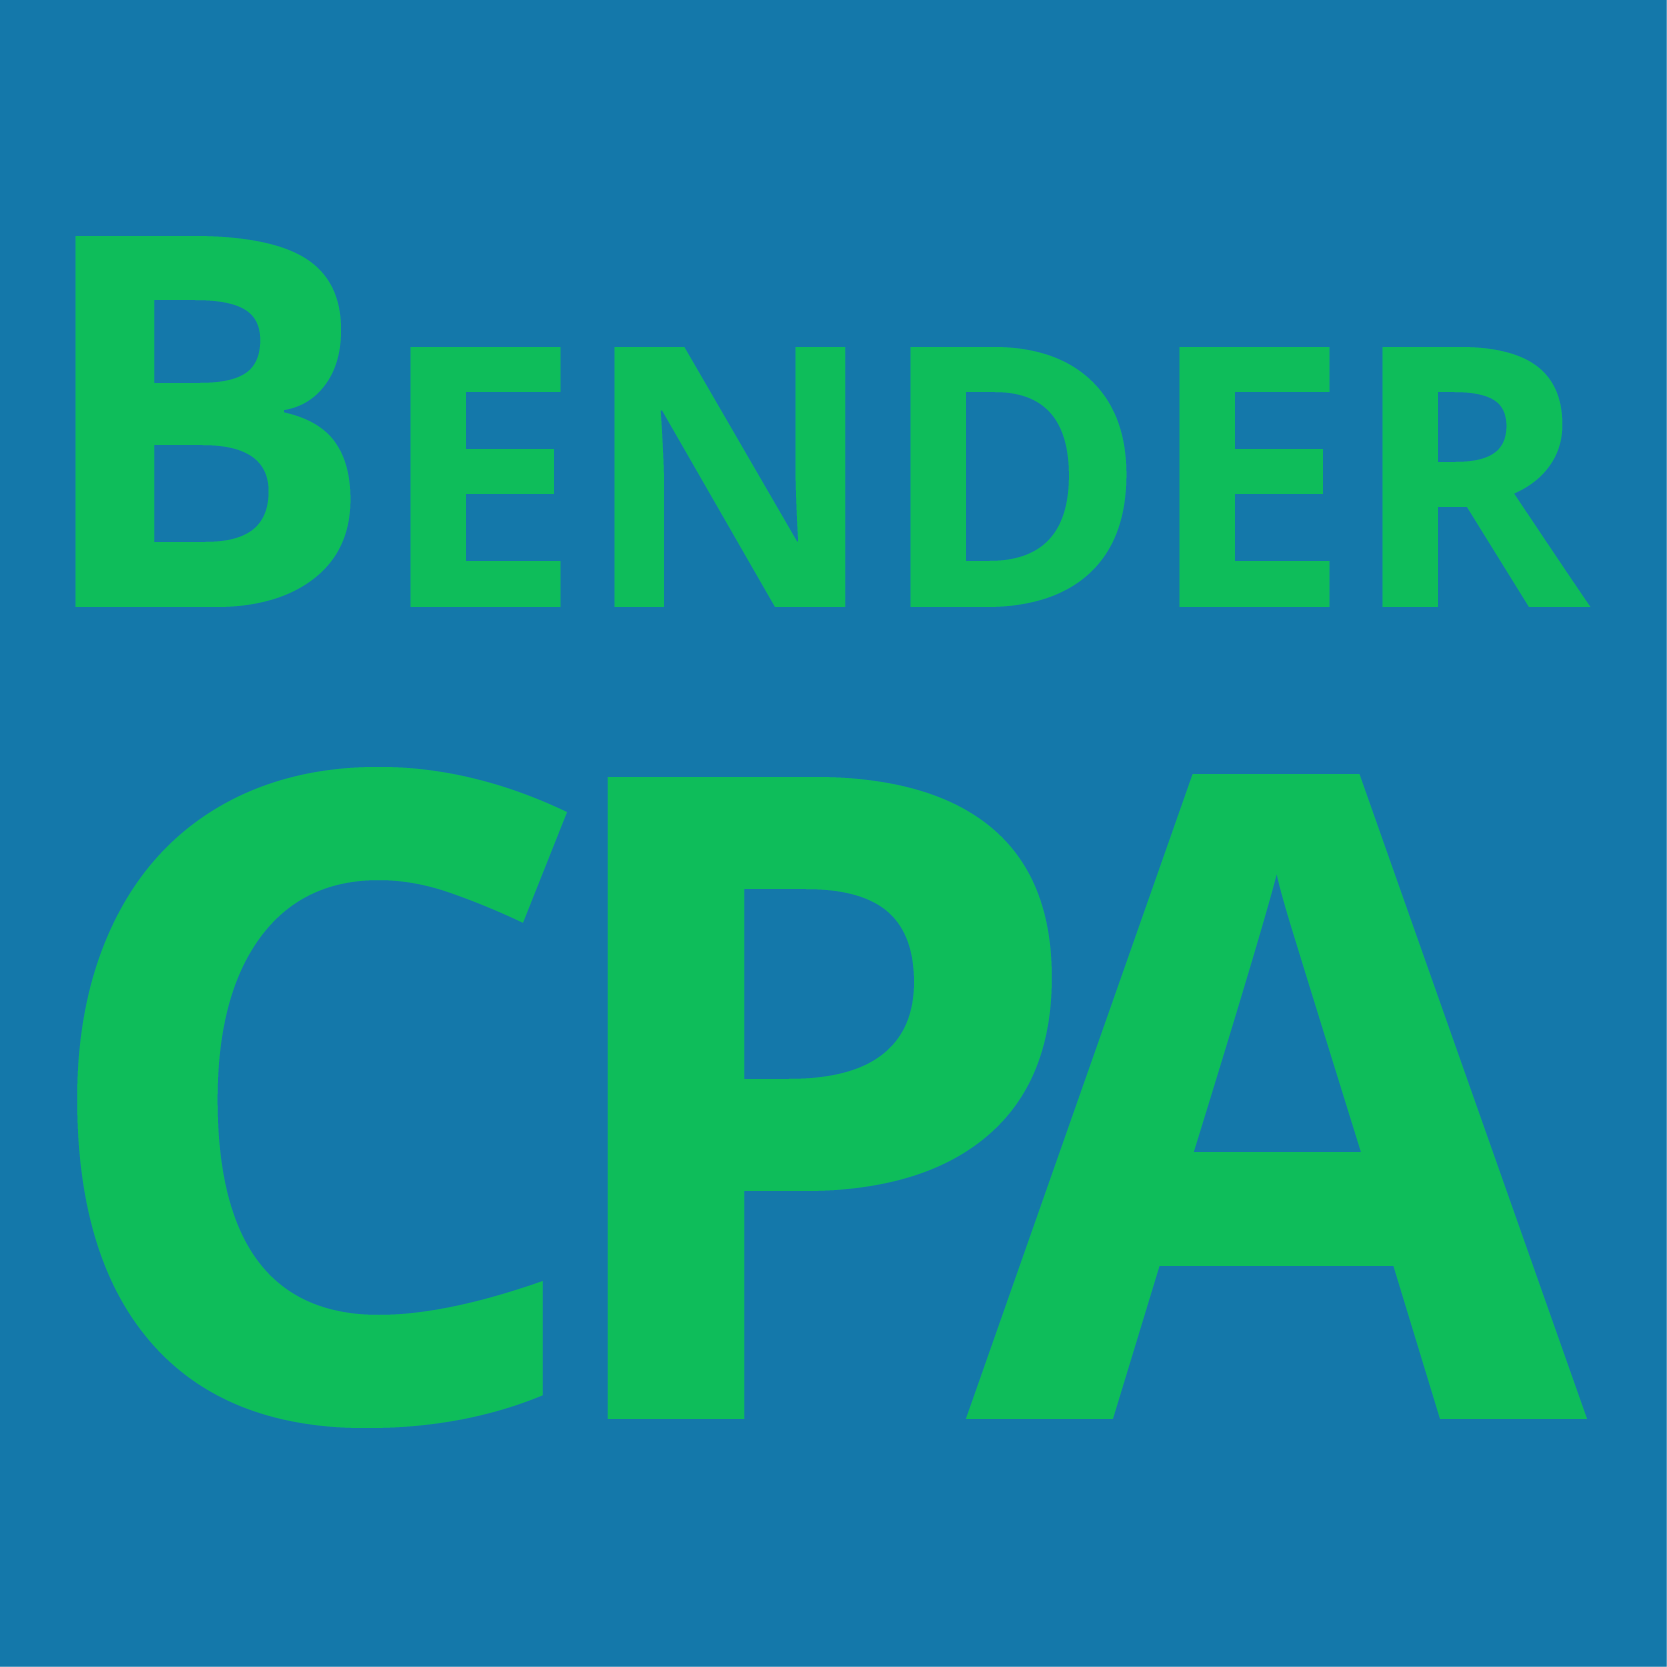 Bender CPA | Clarify Your Taxes